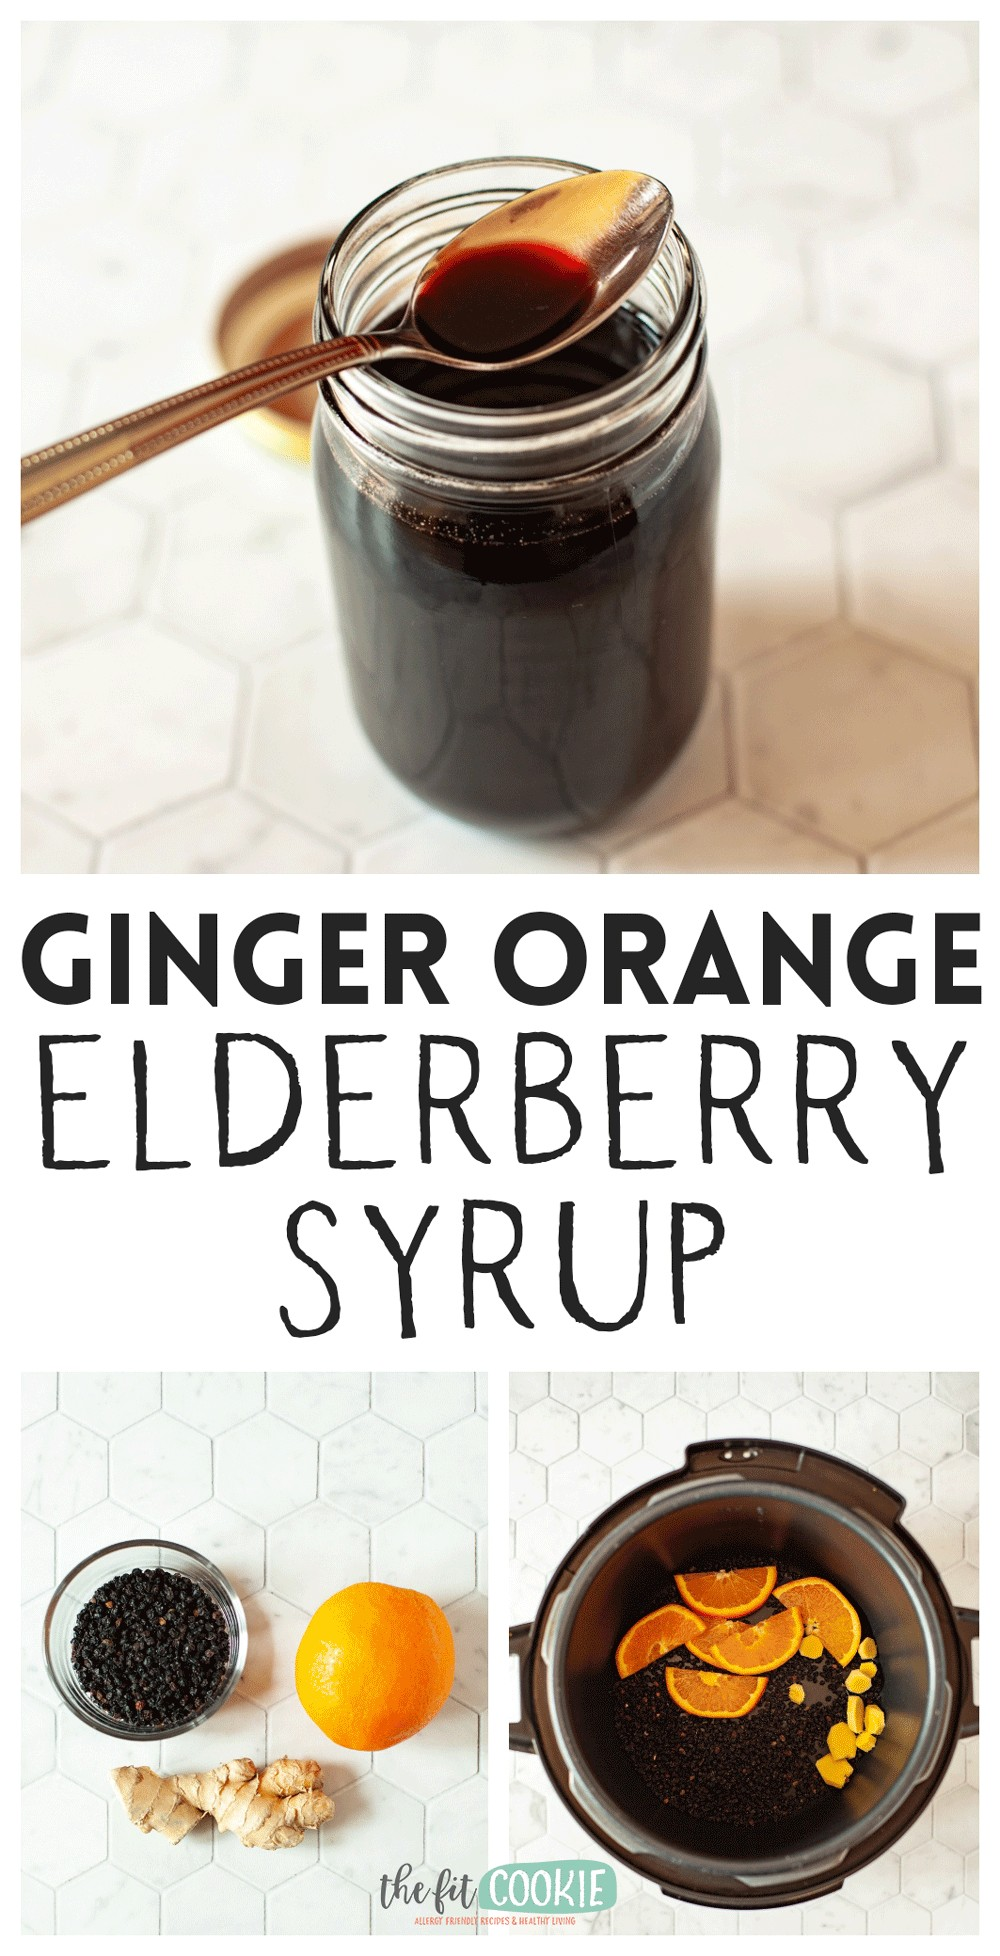 photo collage of elderberry syrup and ingredients